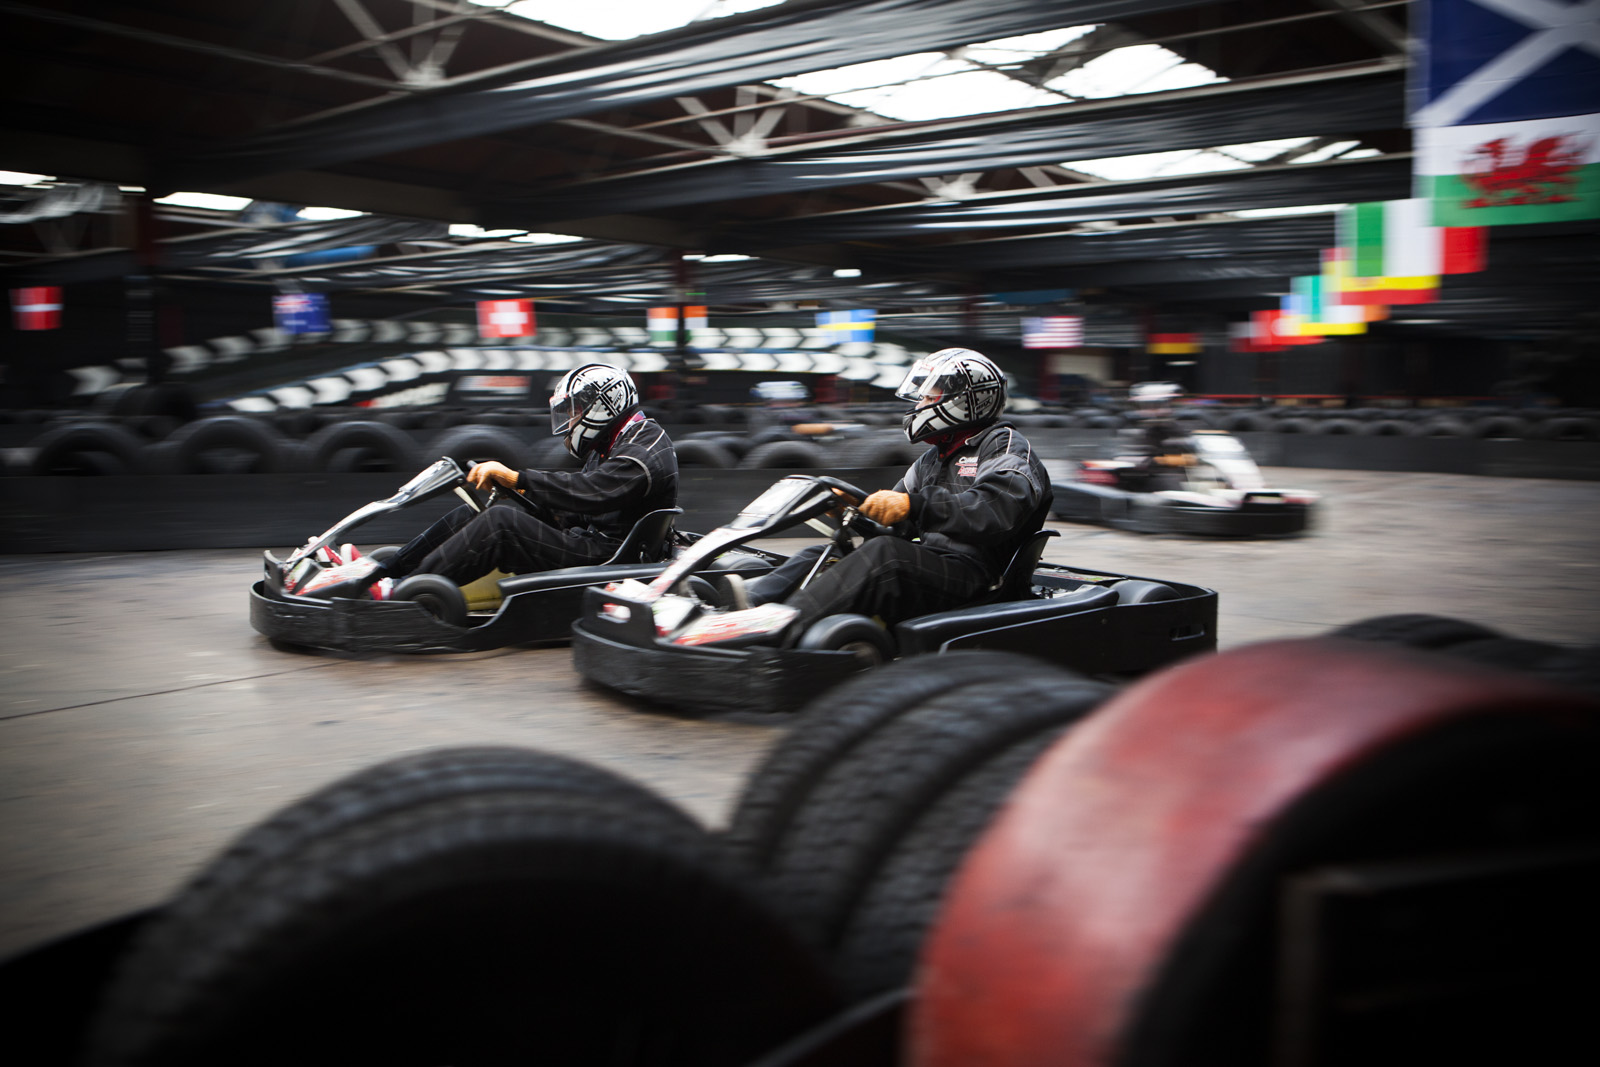 Go Karting Tips for Beginners